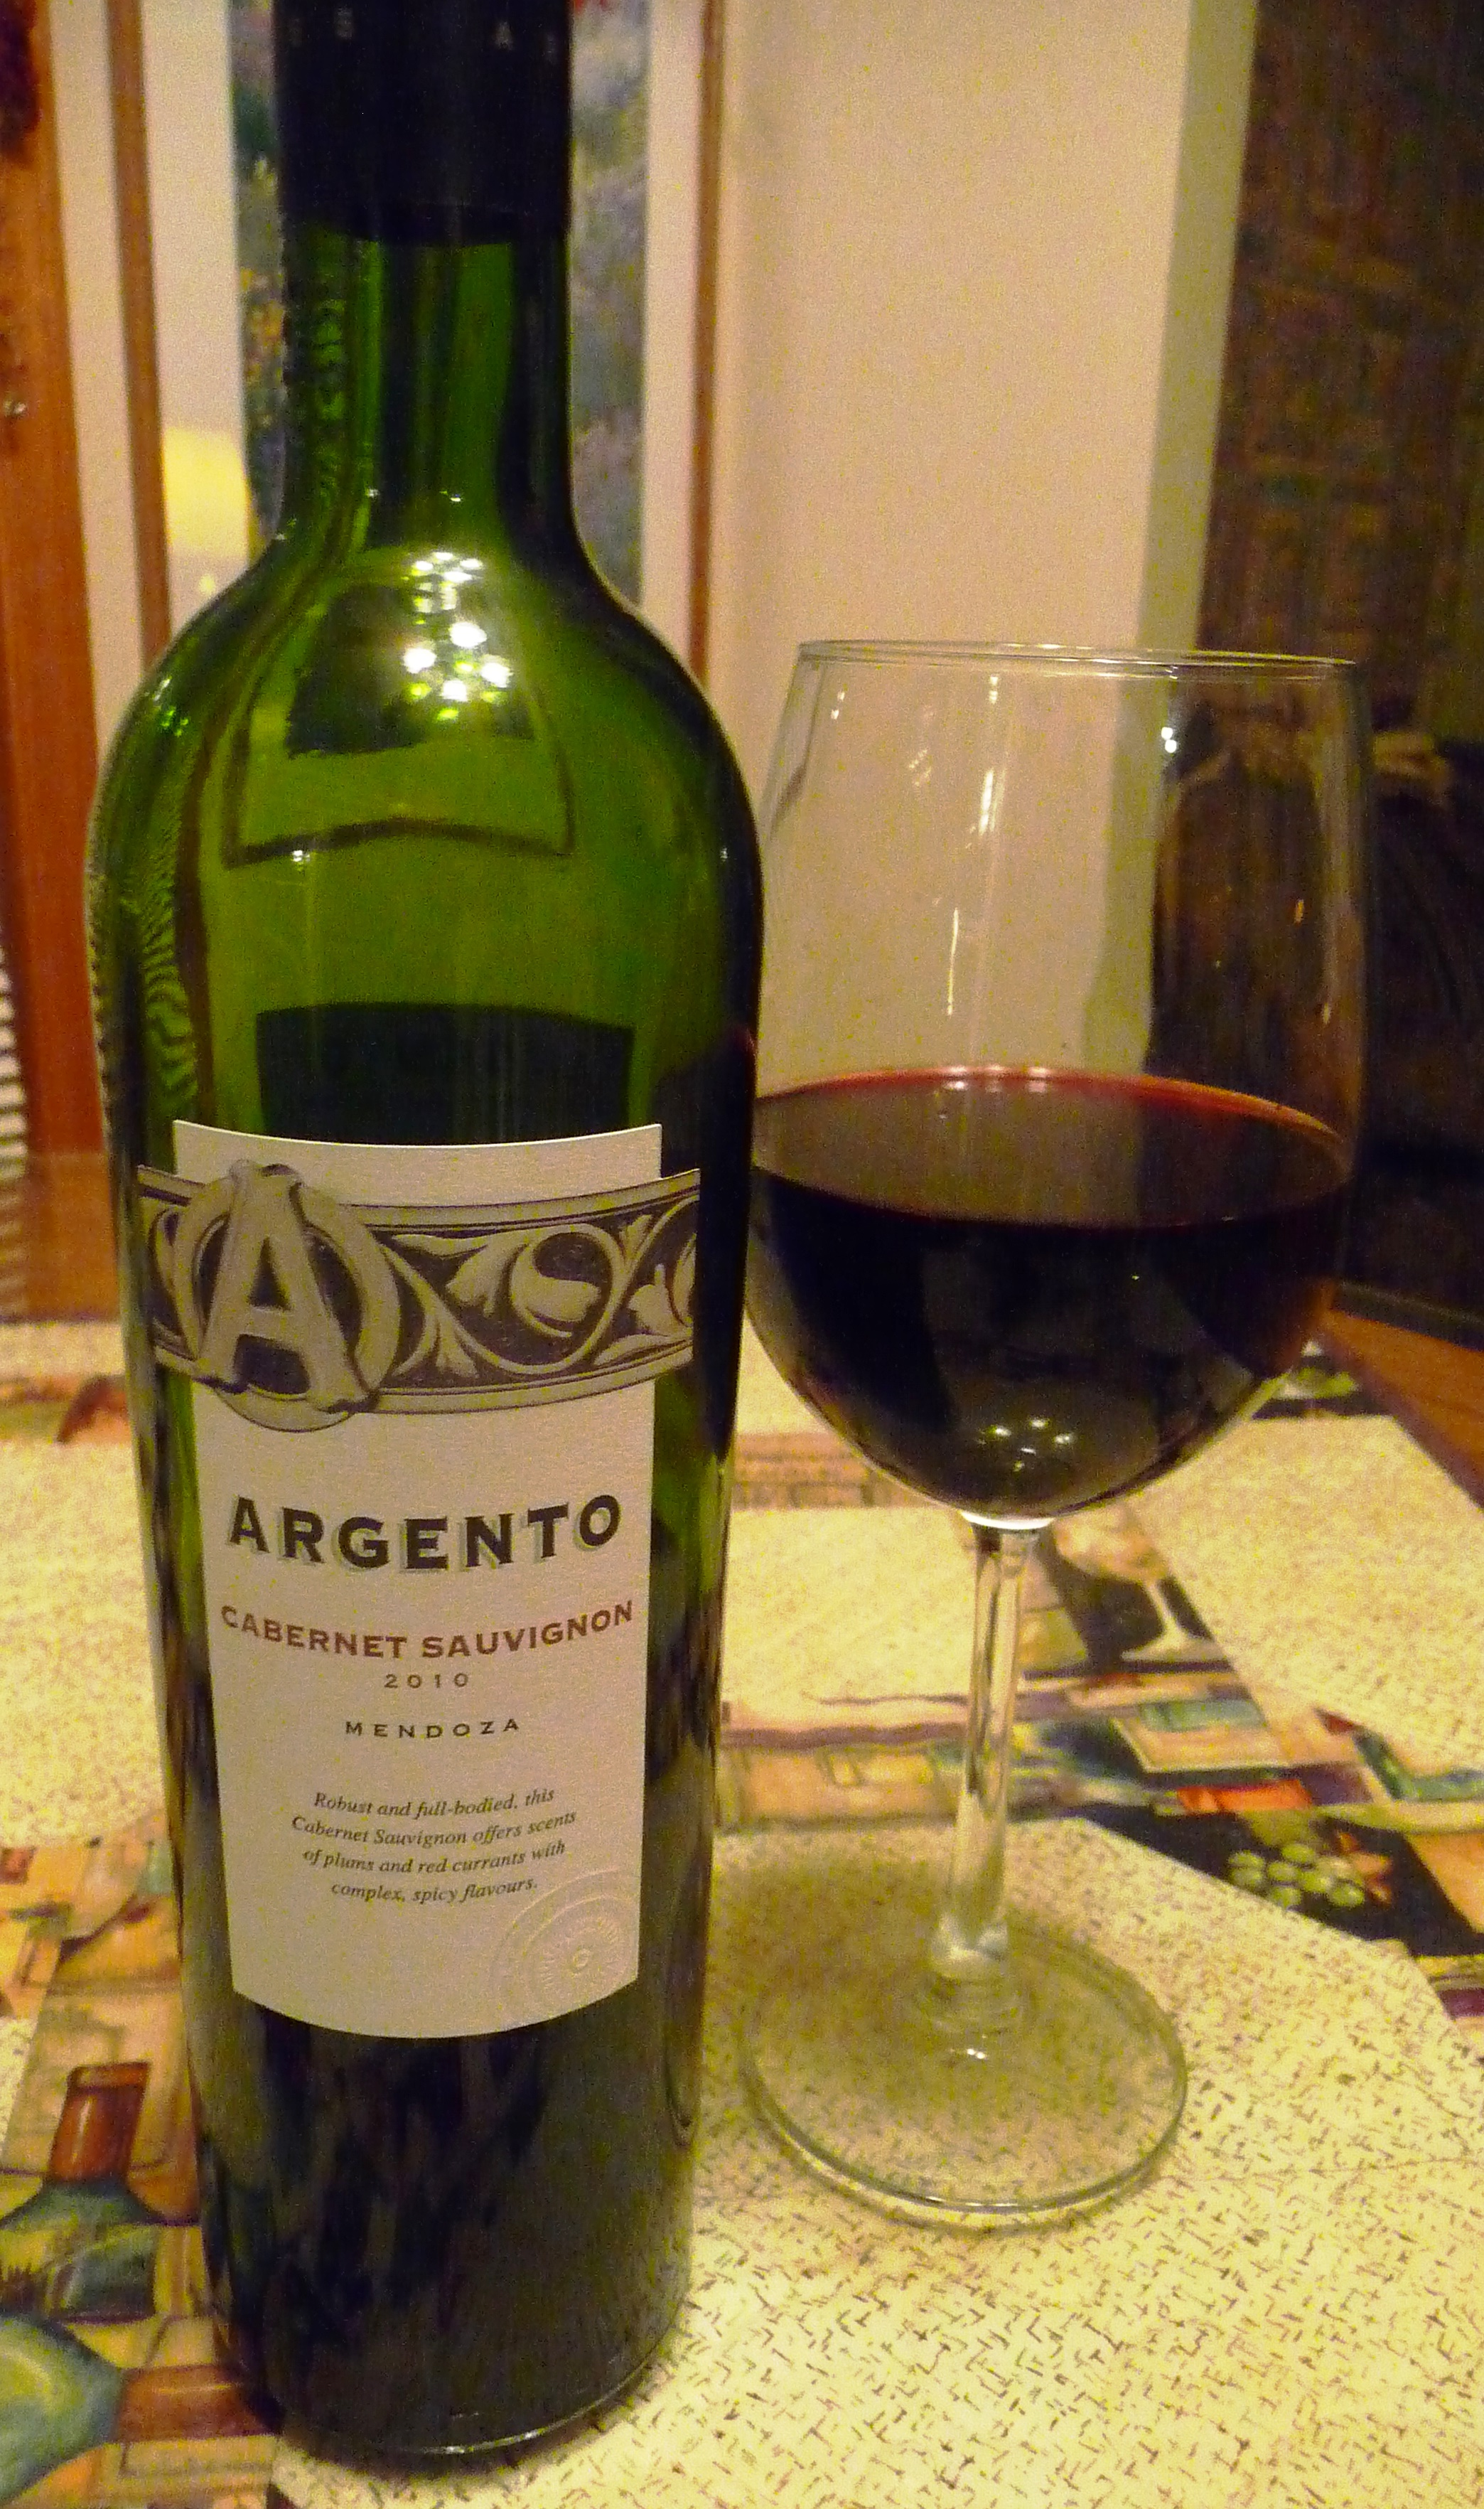 Wines from South America can be a wonderful value like this 2010 Argento Cabernet Sauvignon for $13.